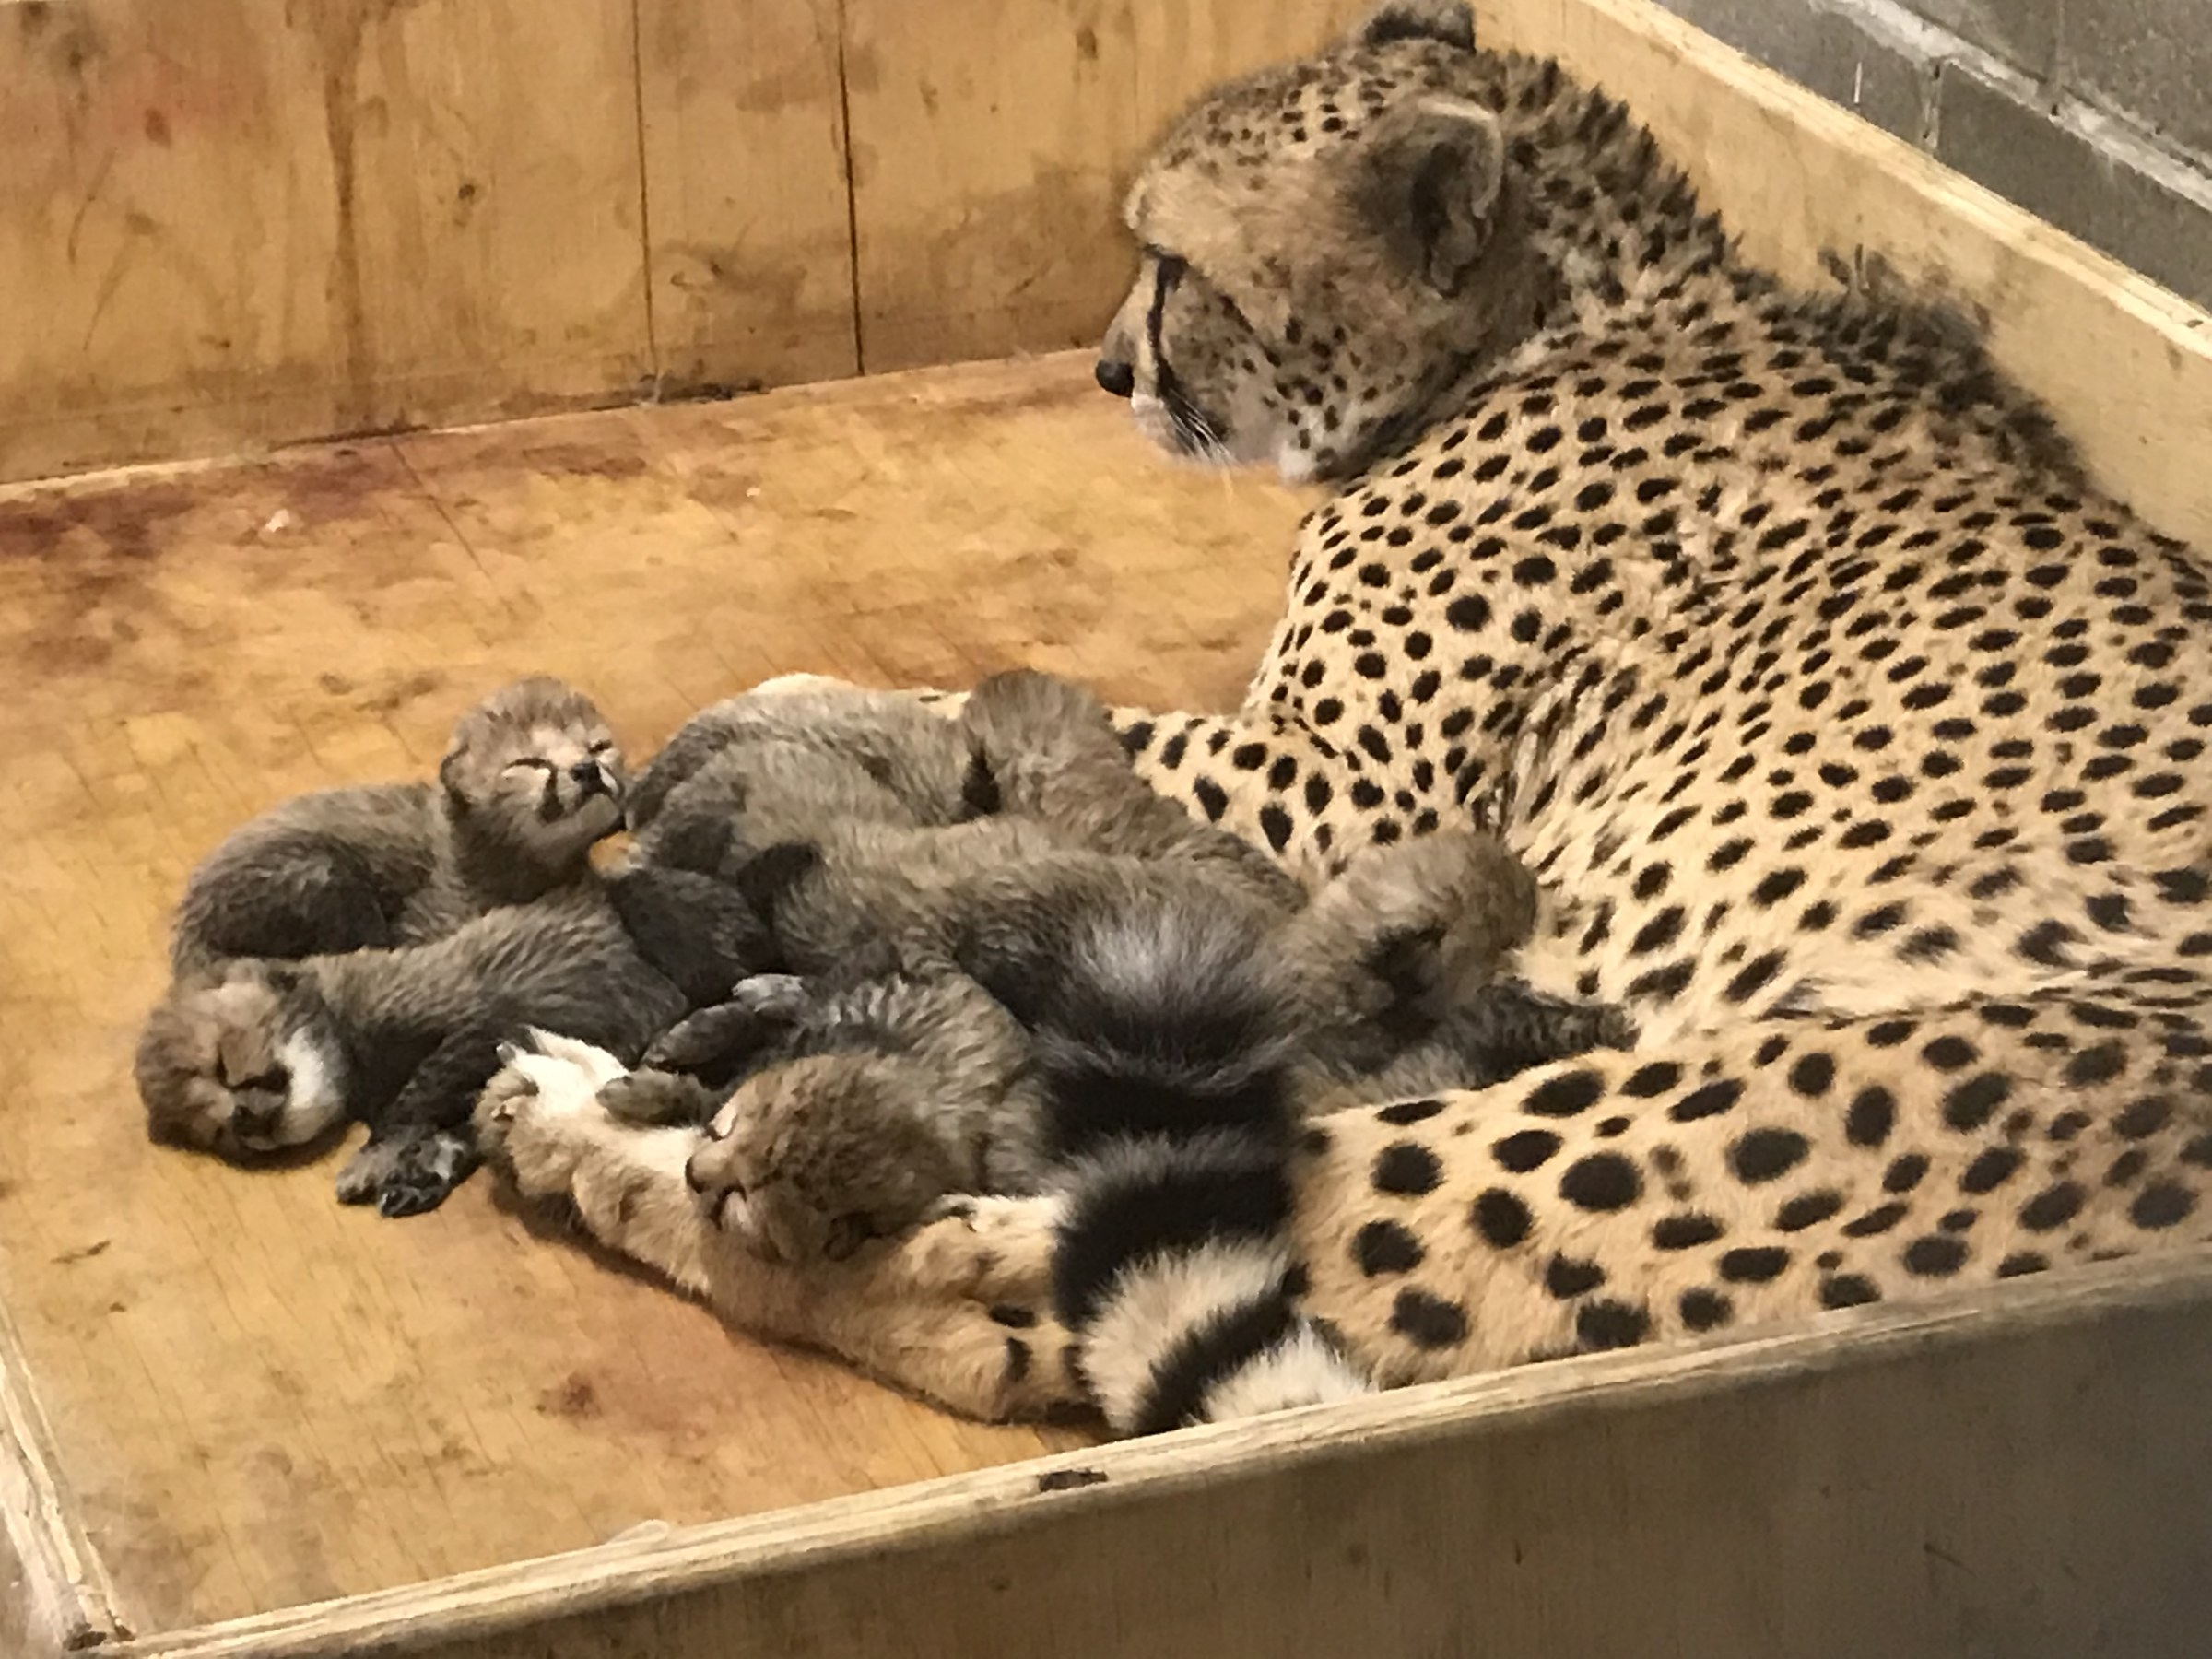 Which of the animals do the cubs give birth to